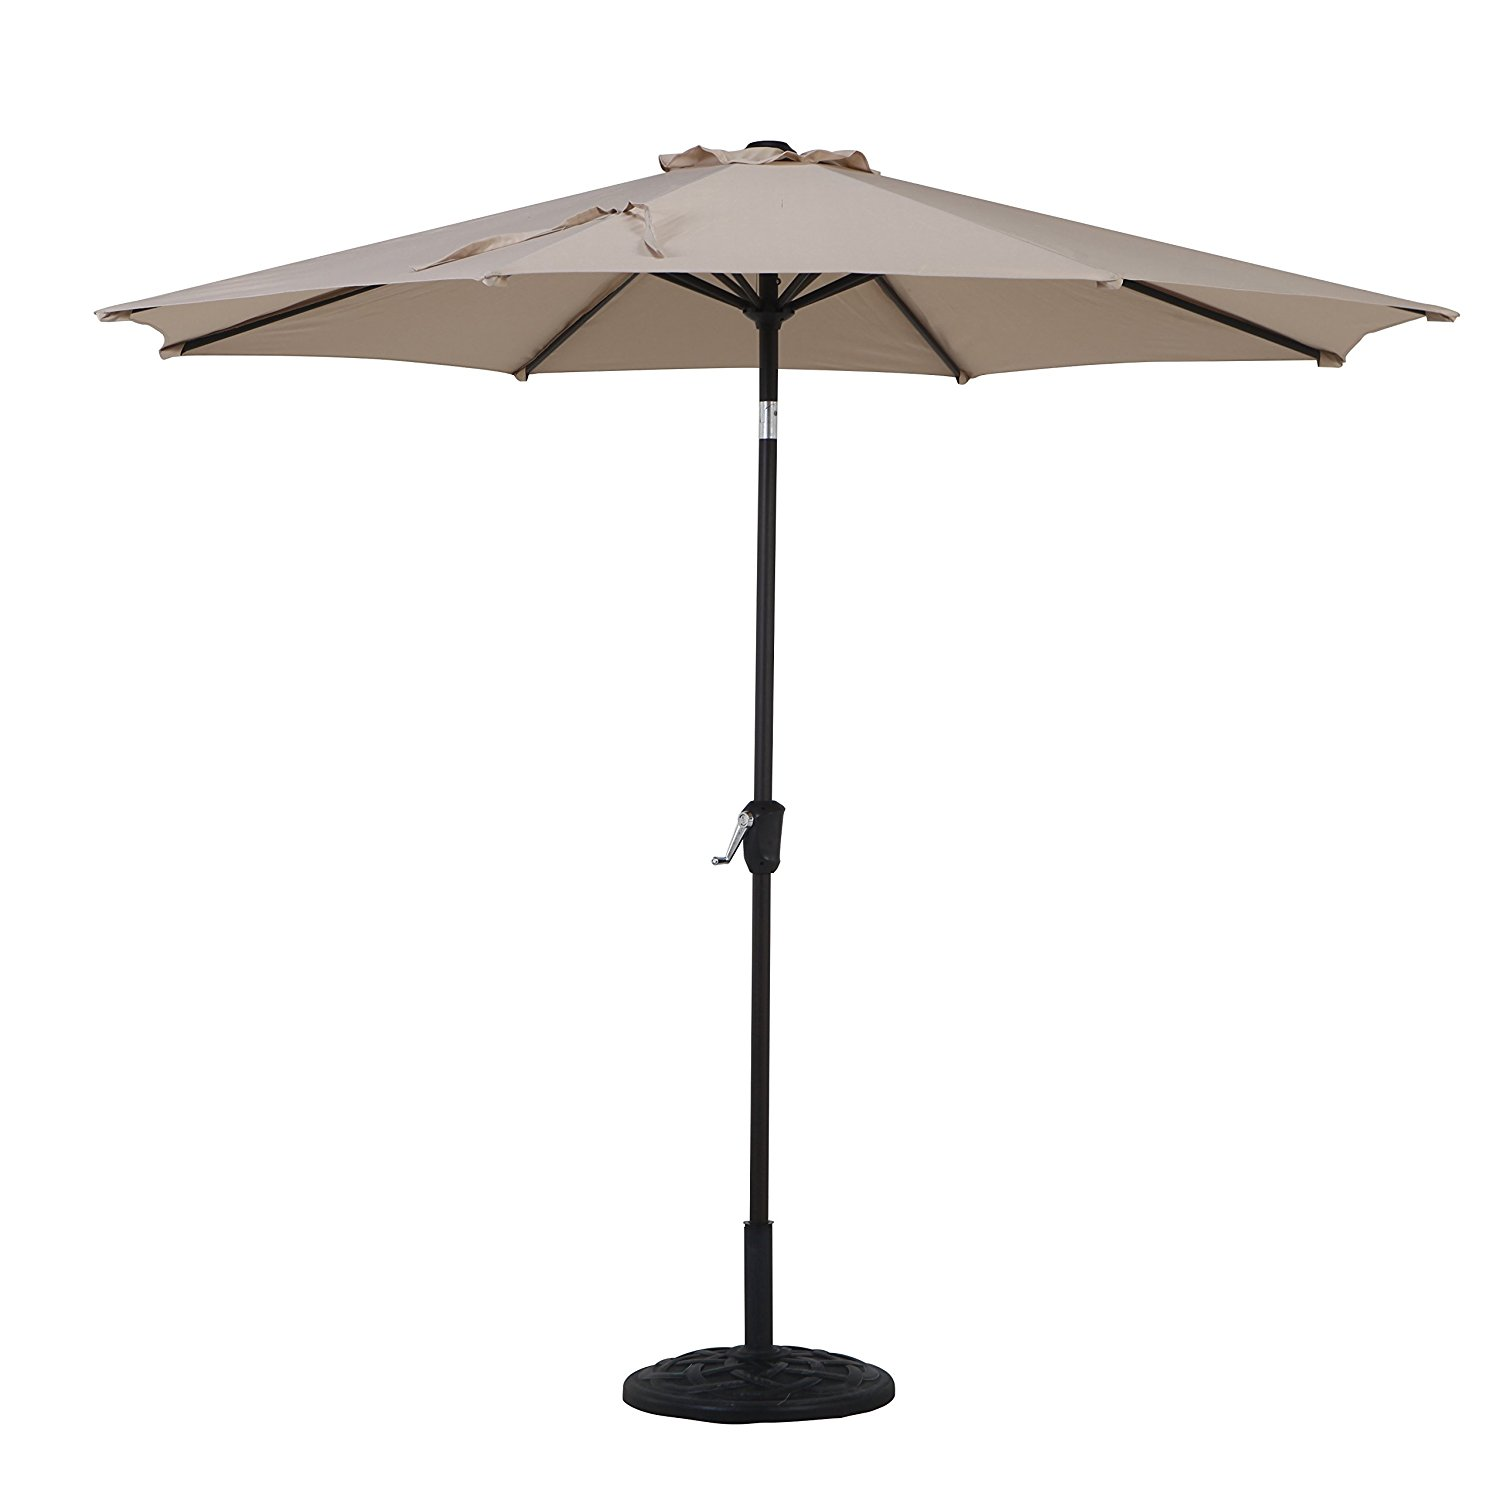 Grand patio 9FT, 8 Ribs Aluminum Patio Umbrella with Auto Crank and Push Button Tilt, UV Protective Beach Umbrella, Powder Coated Outdoor Umbrella, Beige